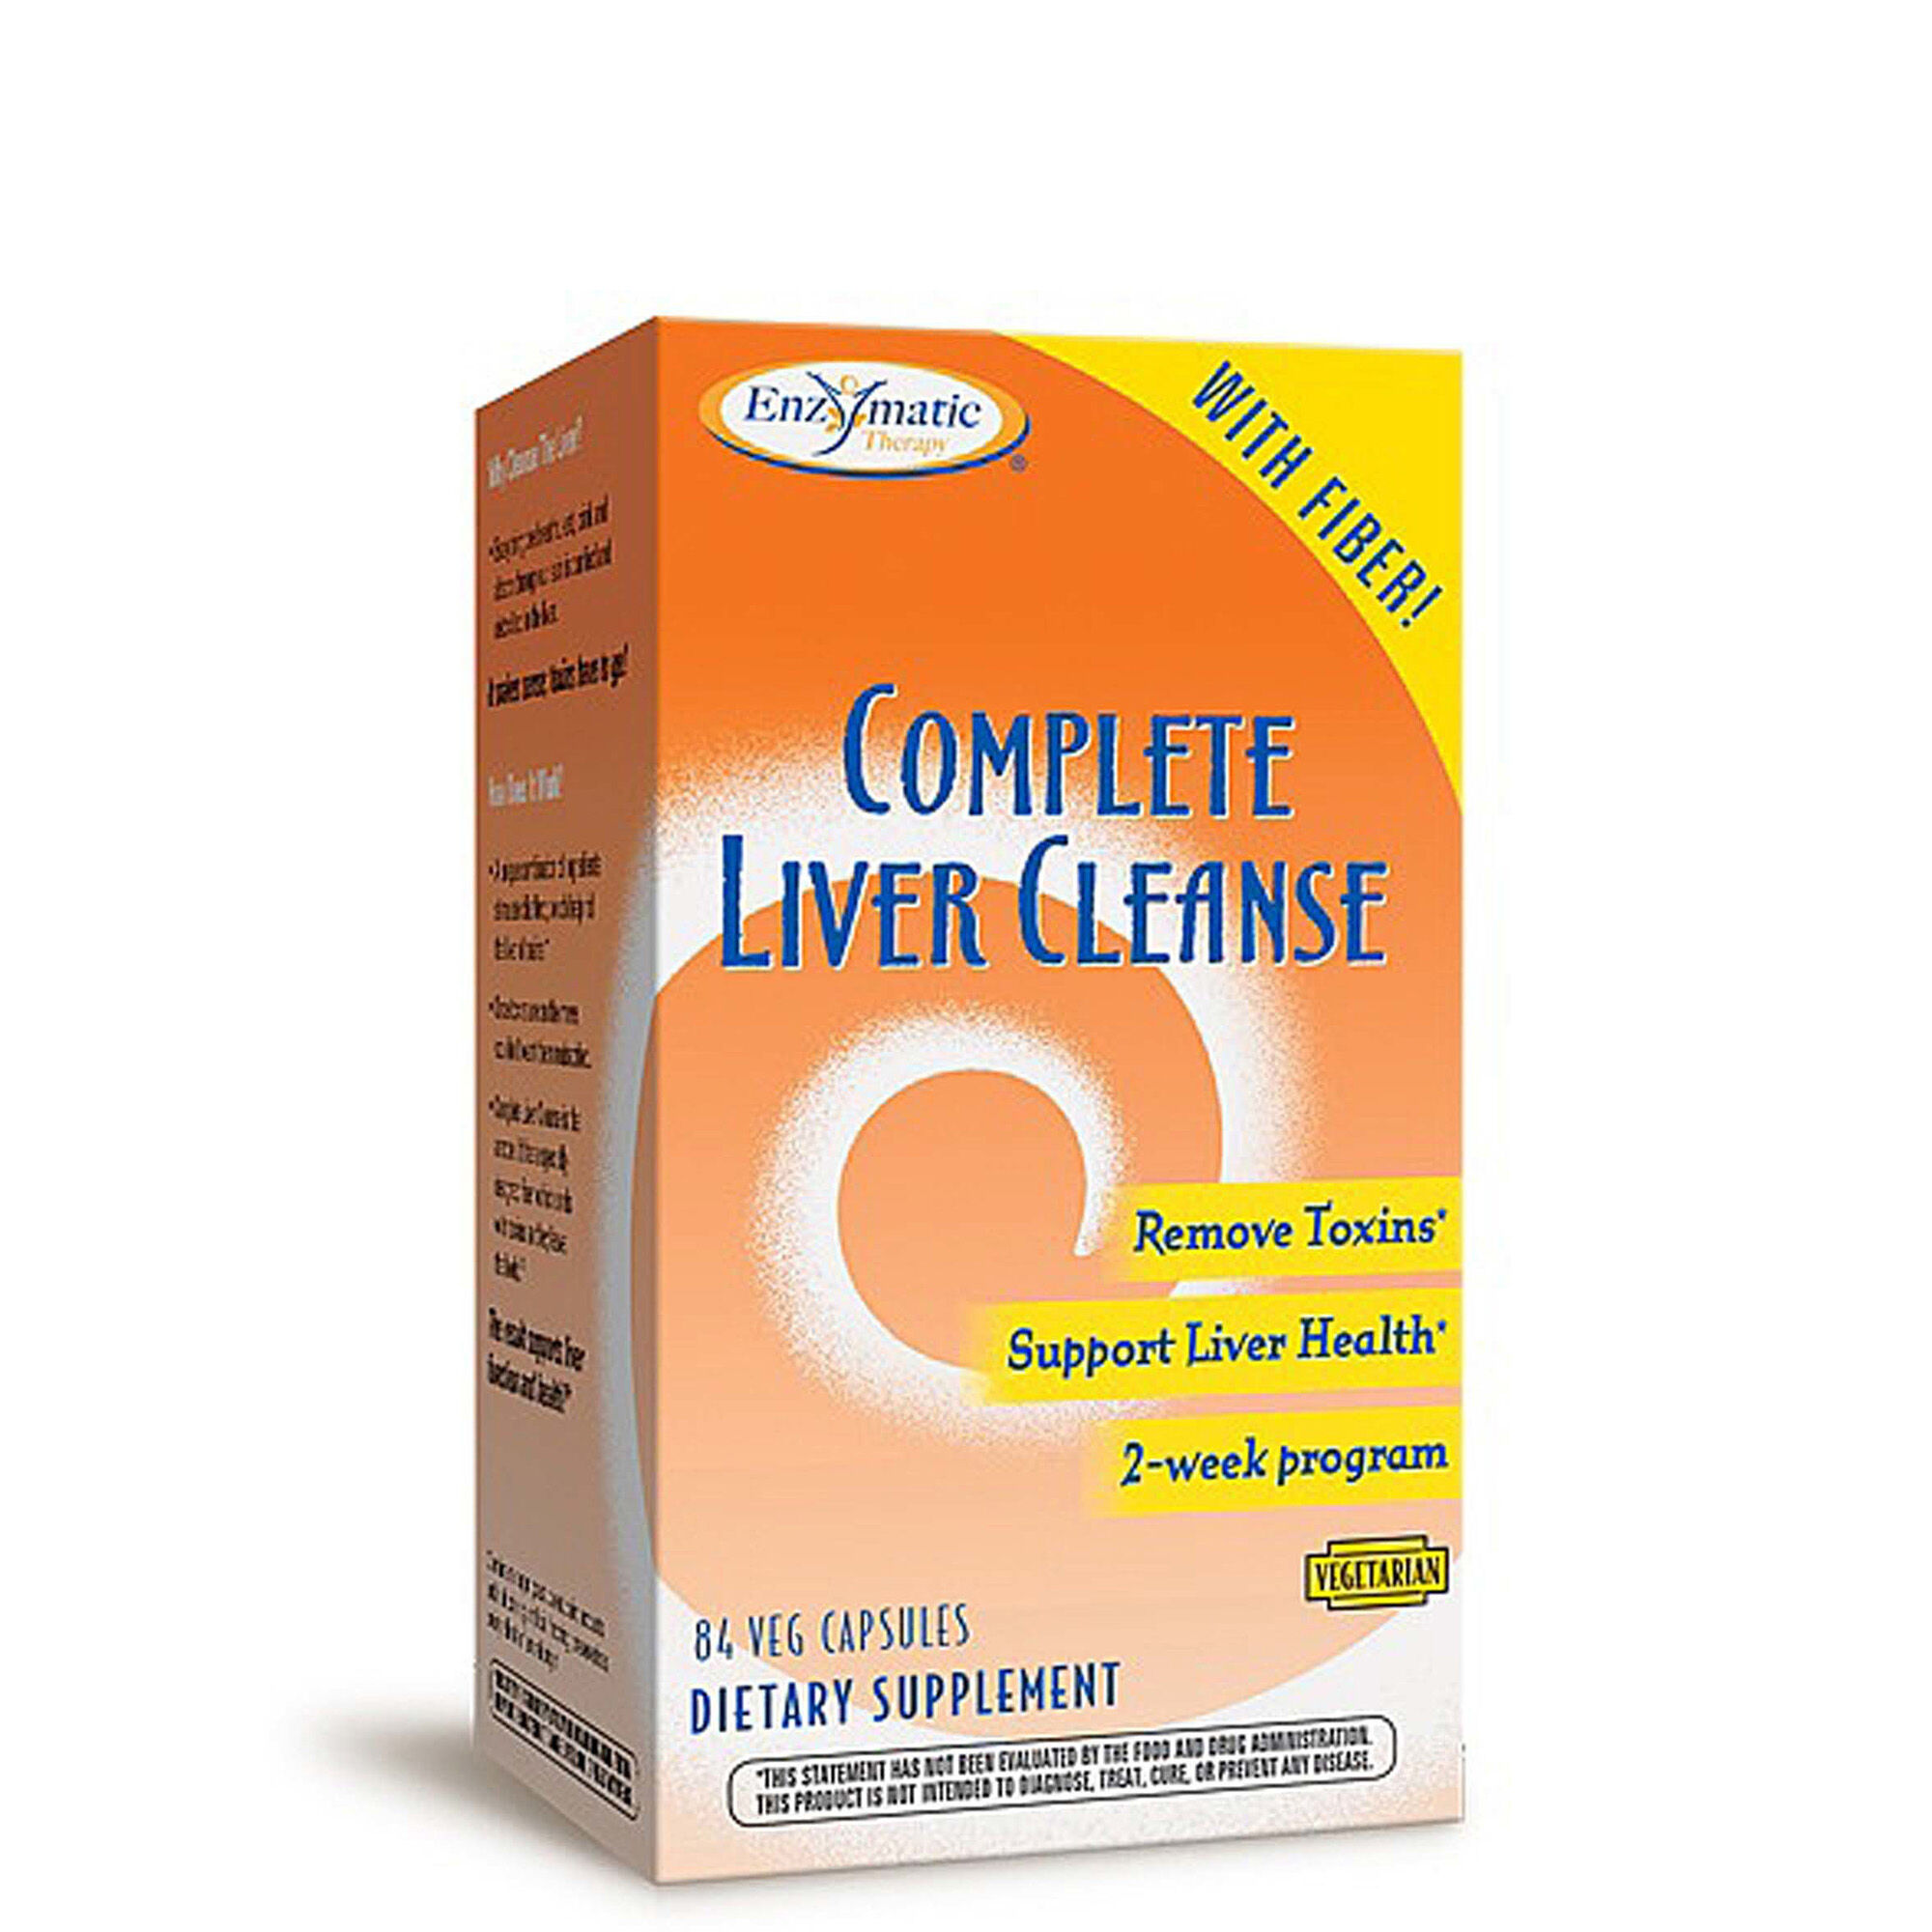 Complete Liver Cleanse - 84 Capsules - Enzymatic Therapy?